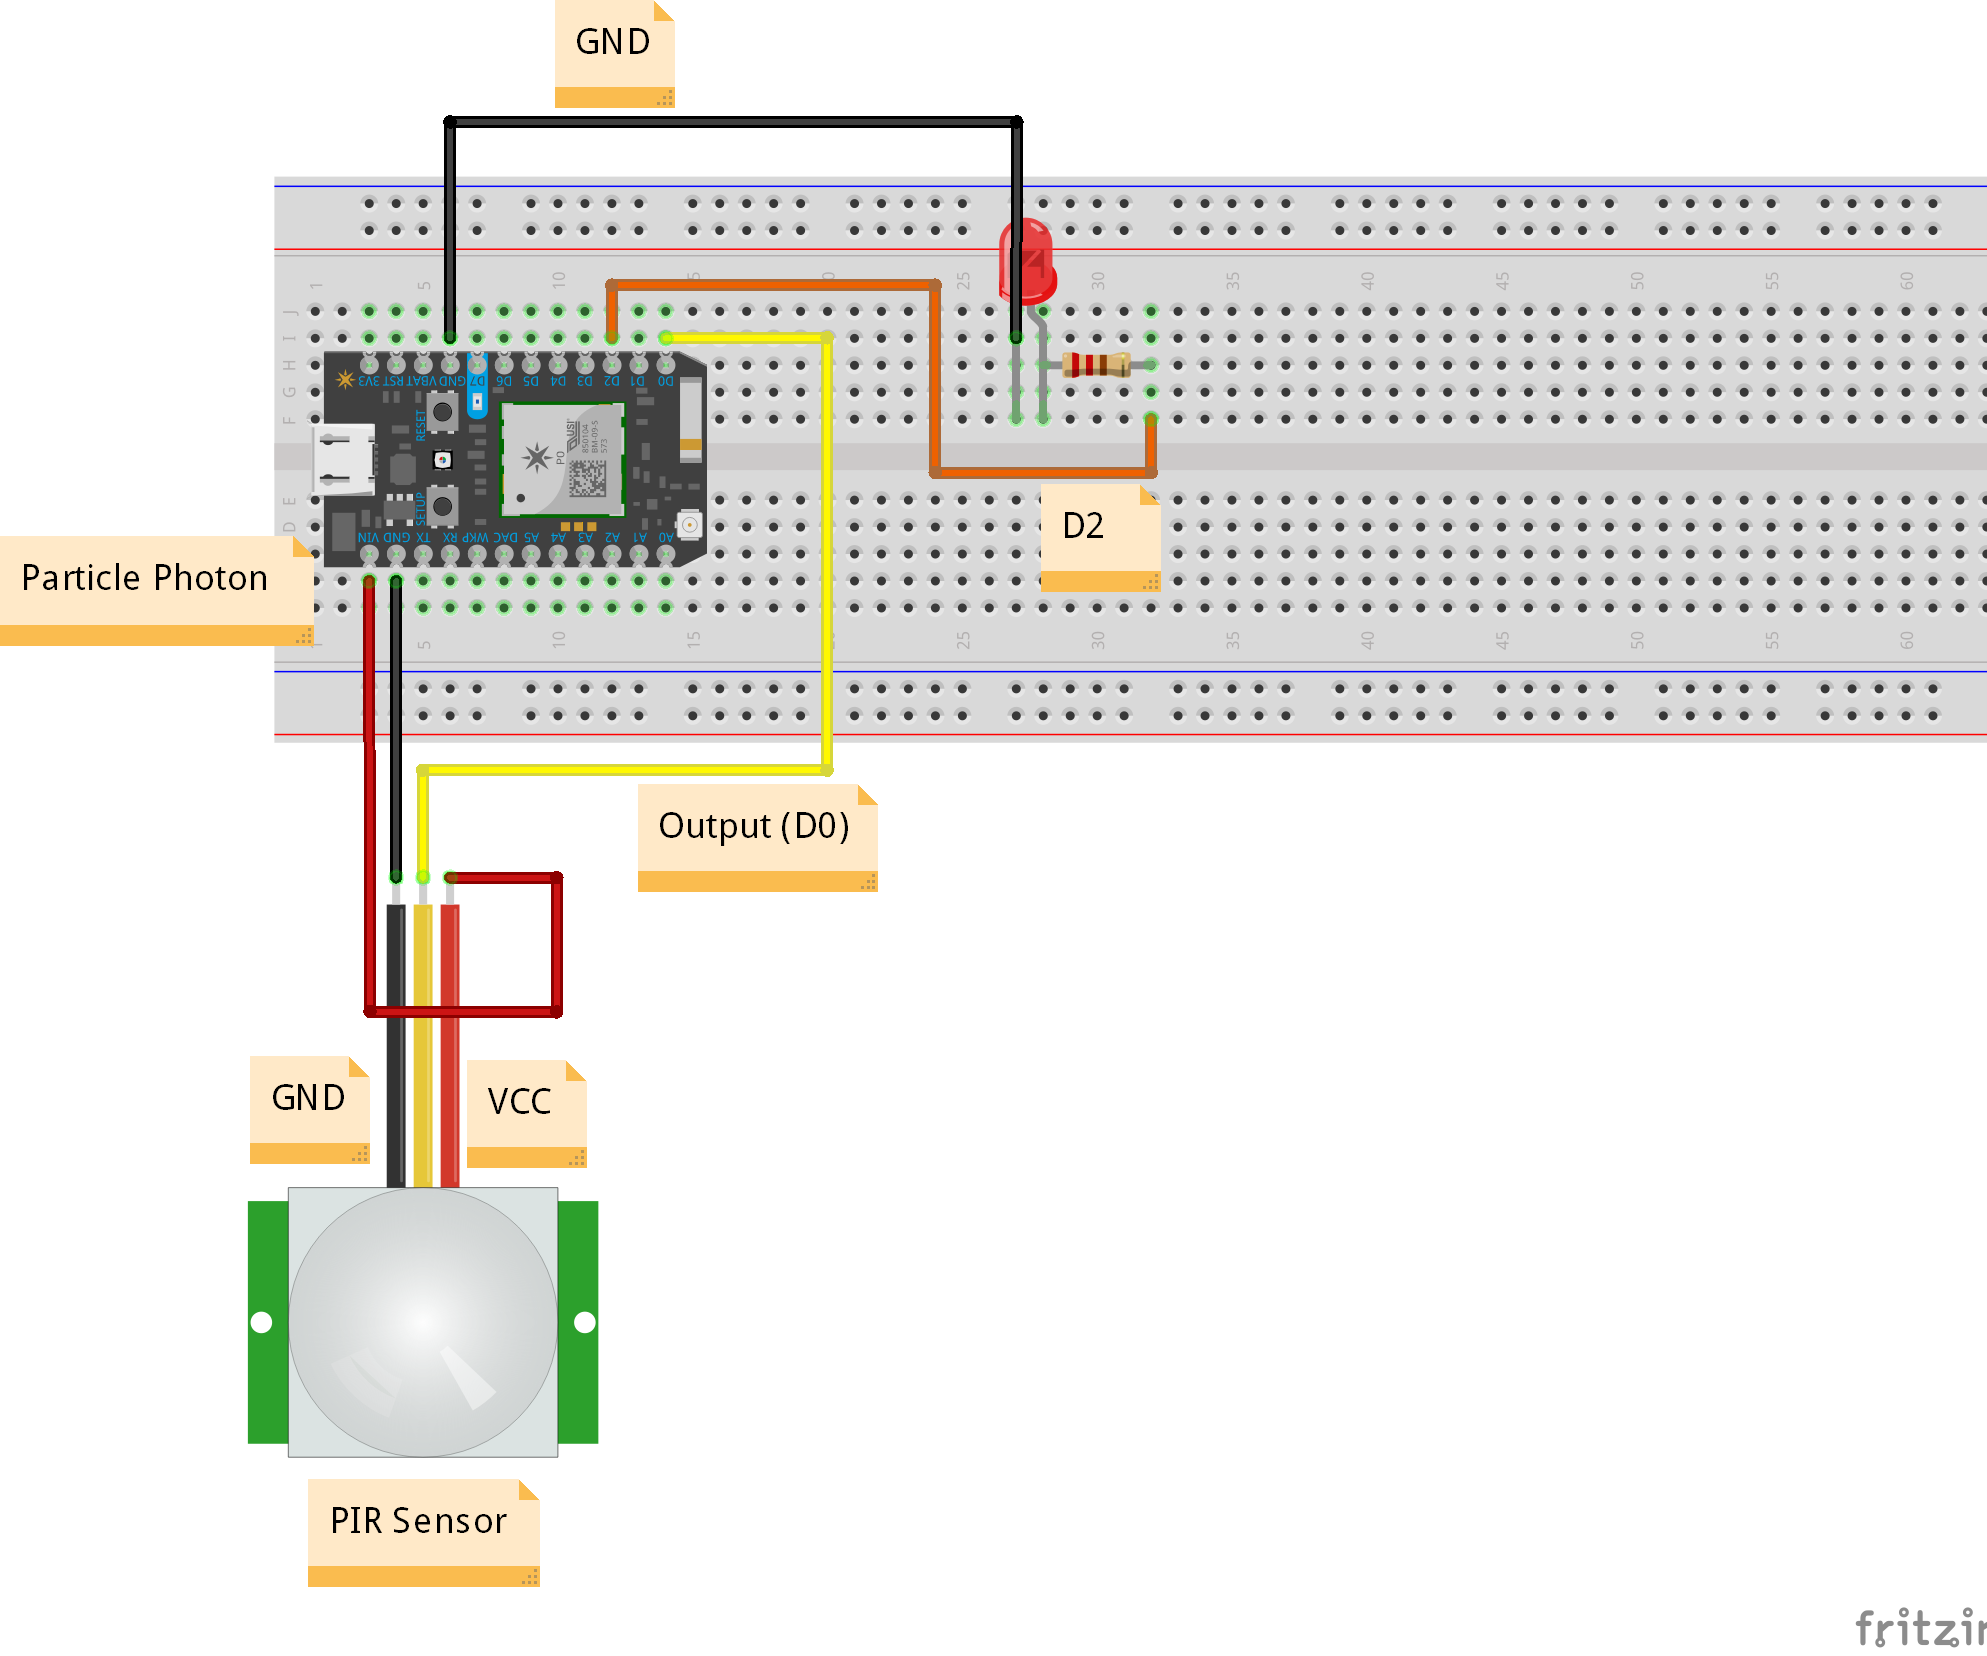 Conference Room Monitoring Using Particle Photon